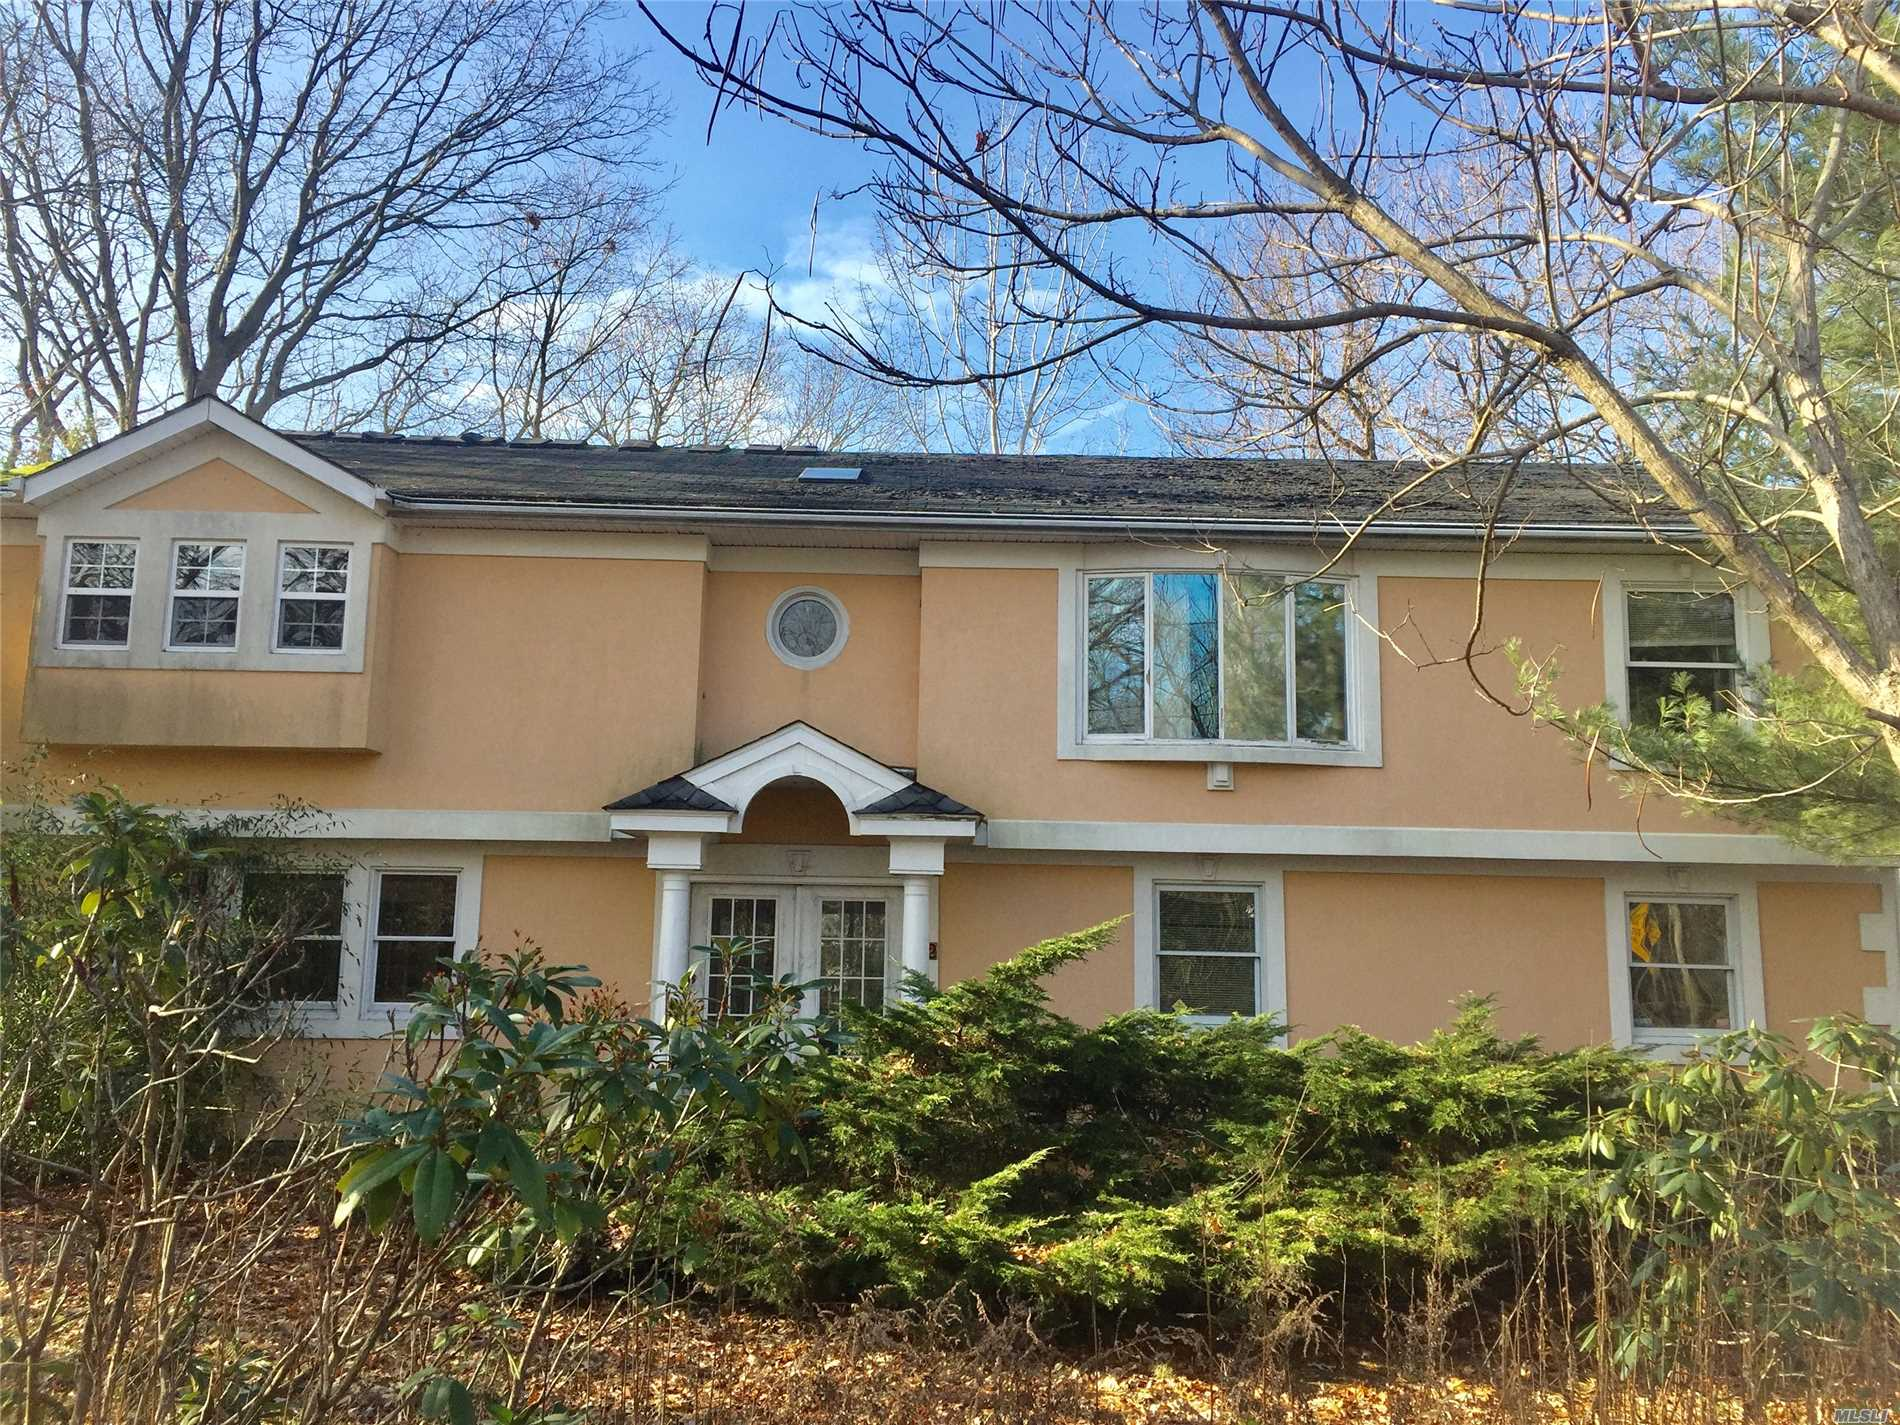 Open Floor Plan, Magnificent 5 Br, 3Bth Colonial. Stainless Steel Appliances, Granite Counter Tops, Fenced Backyard, Harwood Floors & Ceramic Tiles, Patio, Mud Room W Separate Entrance. Lots Of Storage And Huge Rooms, Comswogue School And Terryville Elementary , No Electric In Home Please Bring Flashlight.